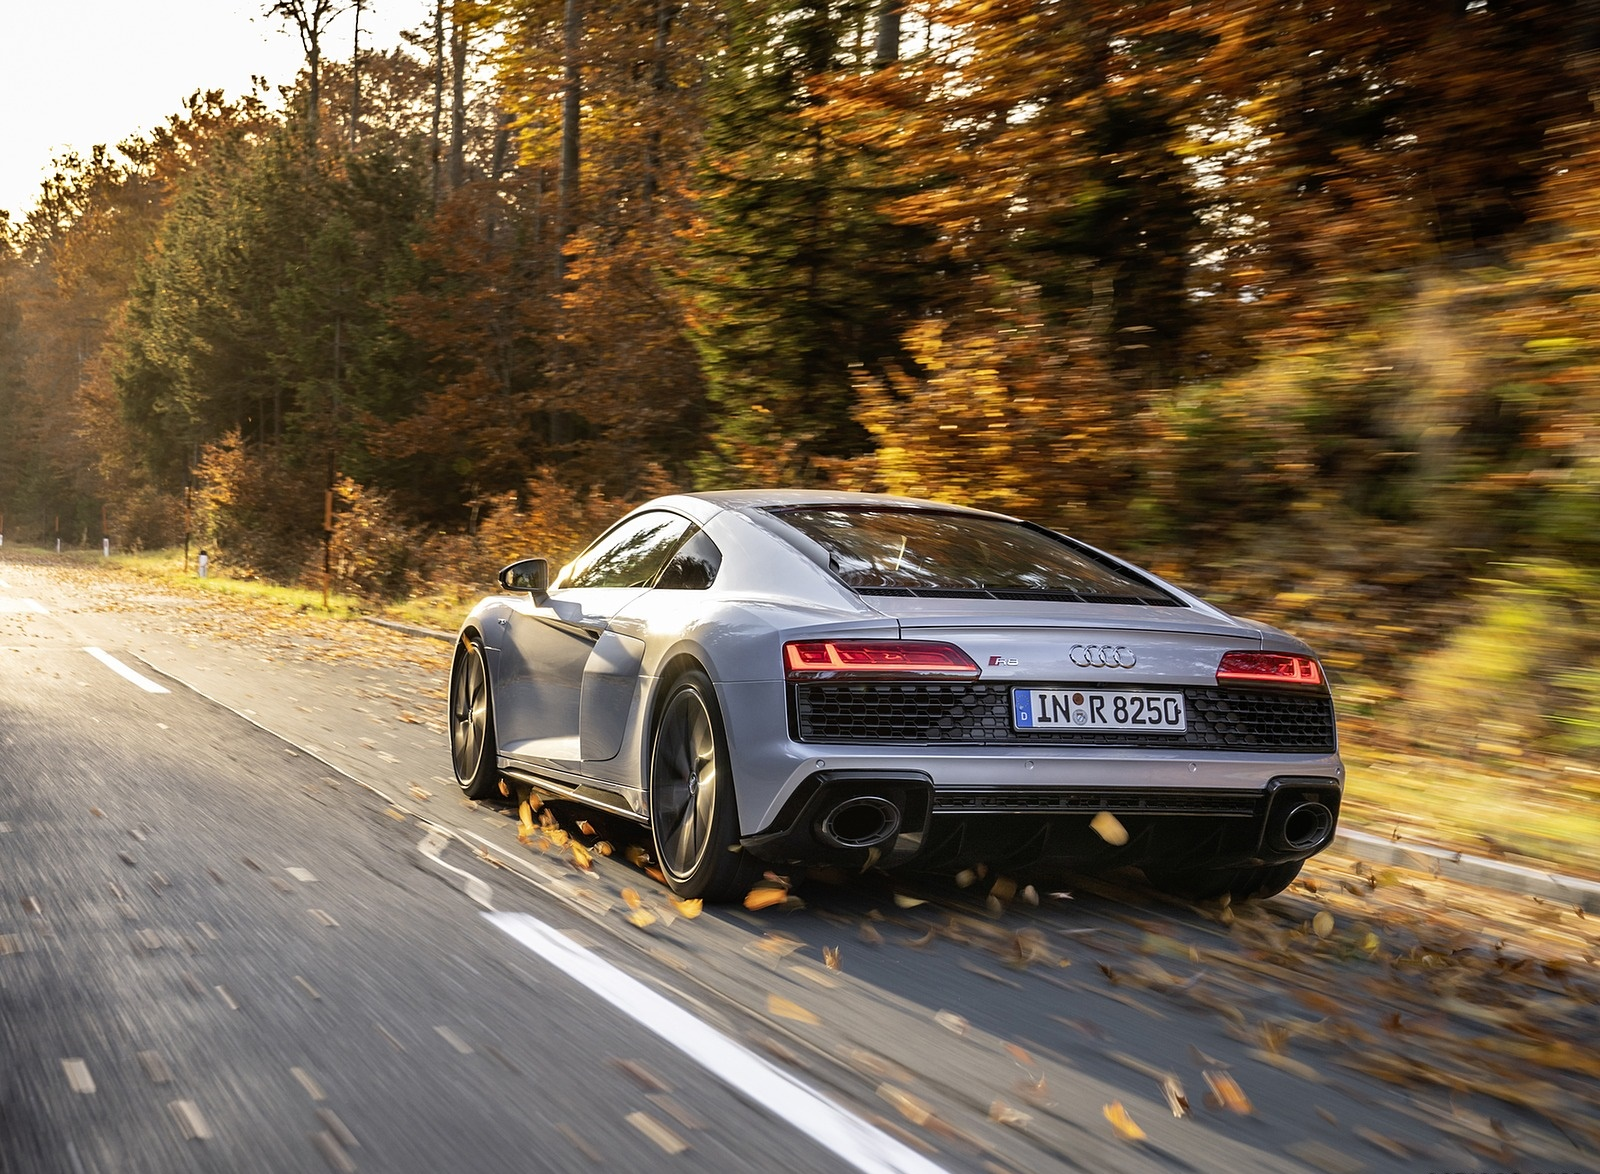 2020 Audi R8 V10 RWD Coupe (Color: Florett Silver) Rear Three-Quarter Wallpapers #7 of 32